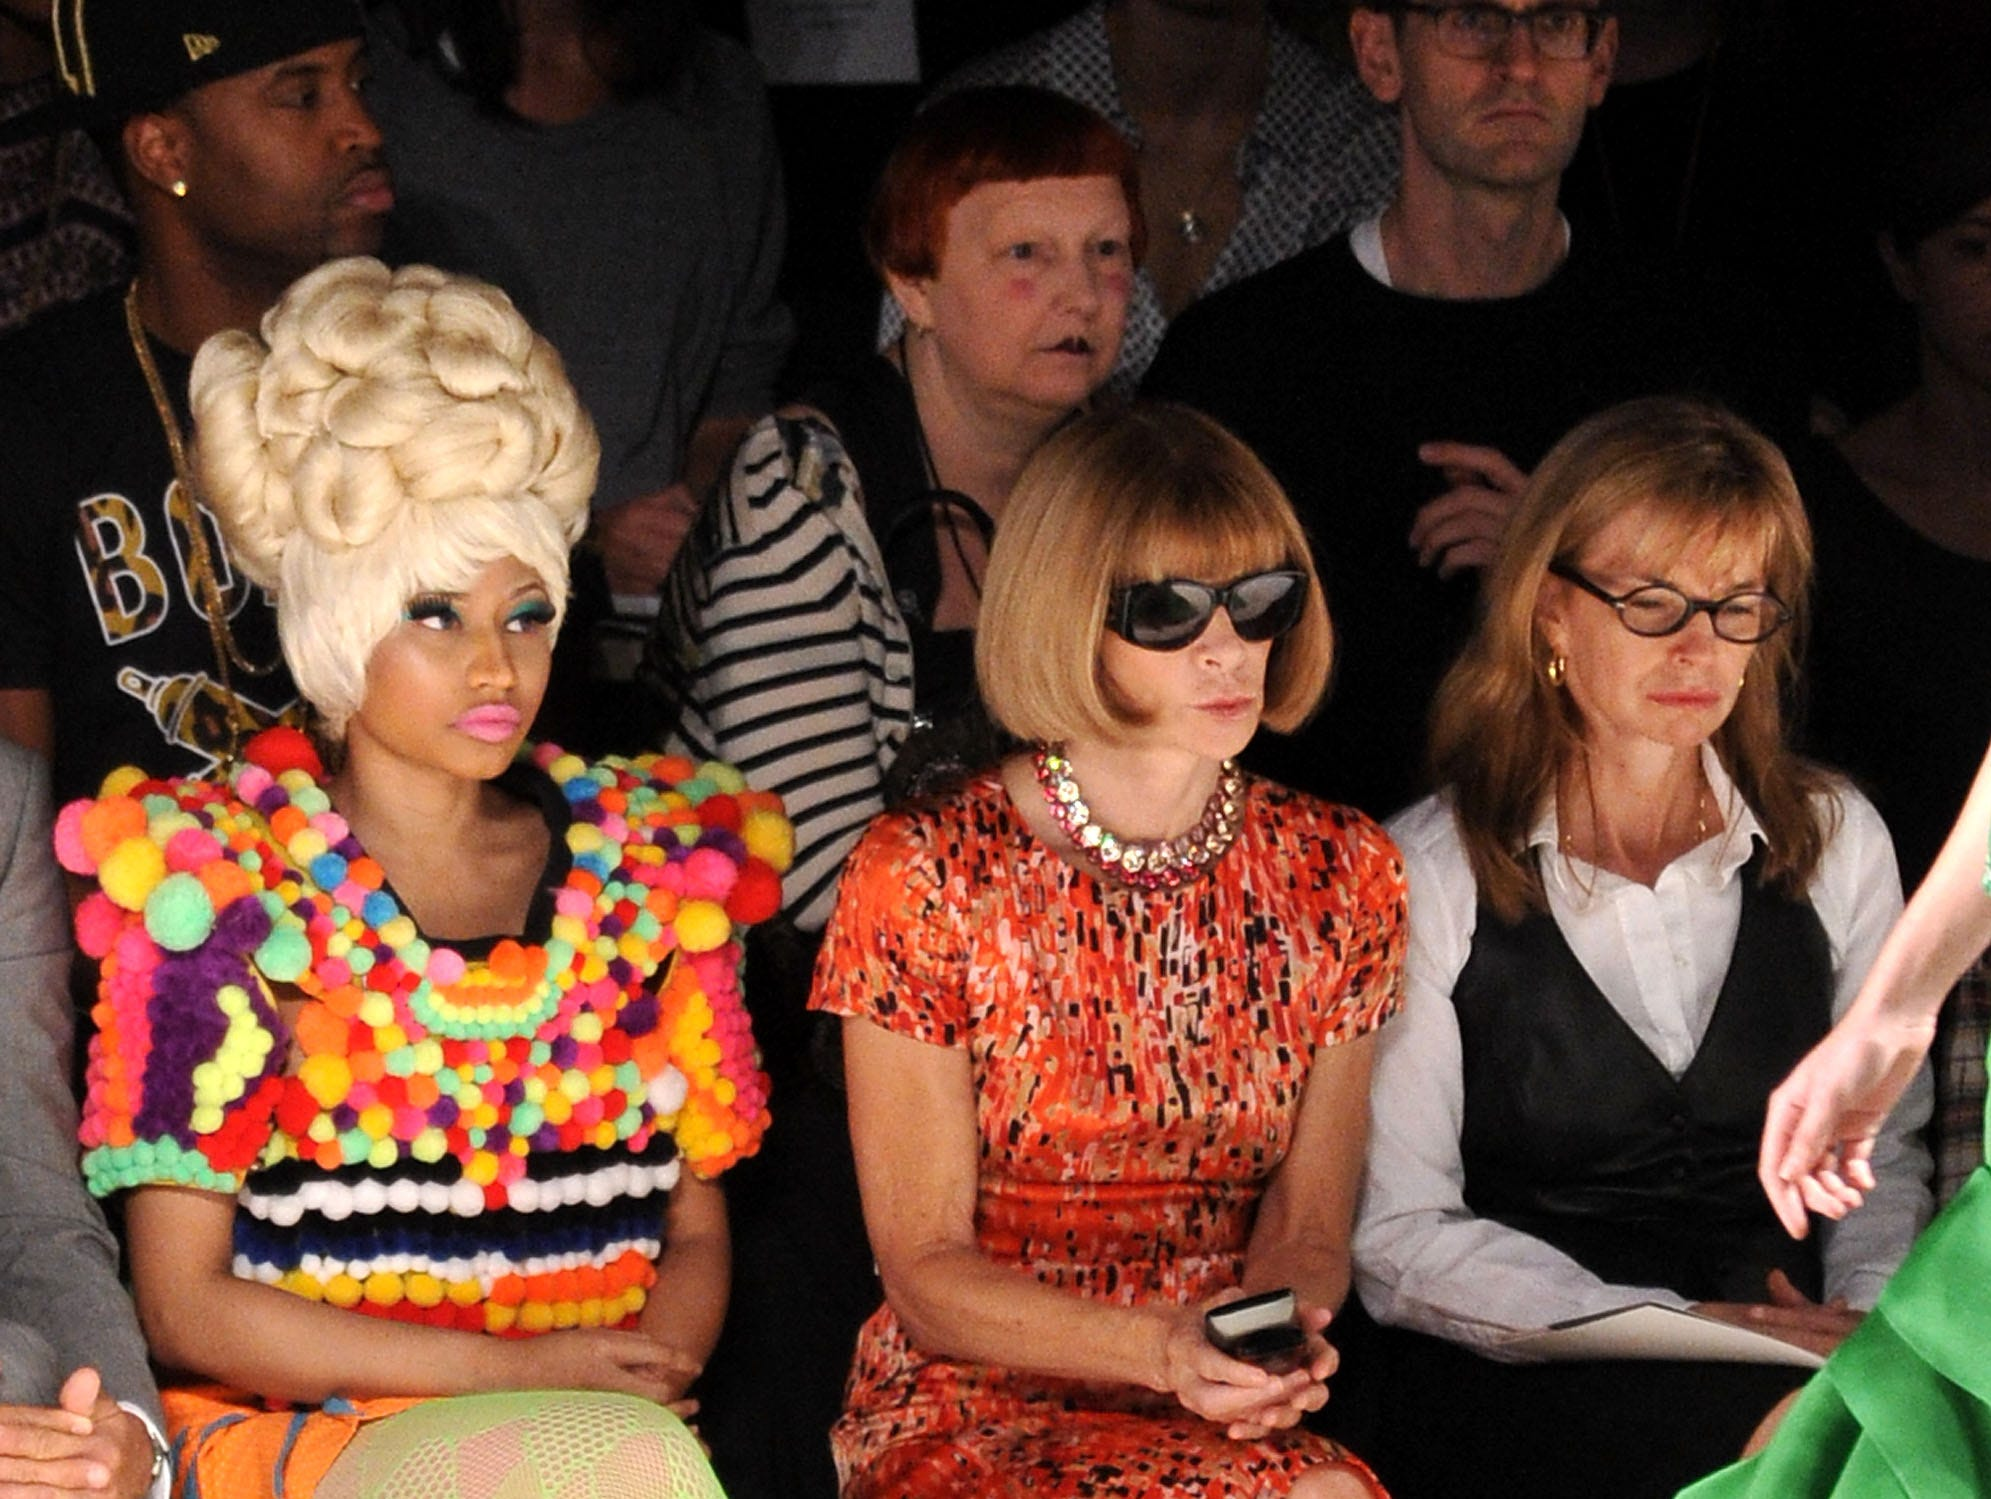 ORG XMIT: 121011077 NEW YORK, NY - SEPTEMBER 12:  Rapper Nicki Minaj (L) and Editor-in-chief of American Vogue, Anna Wintour attend the Carolina Herrera Spring 2012 fashion show during Mercedes-Benz Fashion Week at The Theater at Lincoln Center on September 12, 2011 in New York City.  (Photo by Mike Coppola/Getty Images  for Mercedes-Benz Fashion Week) ORIG FILE ID: 124740349